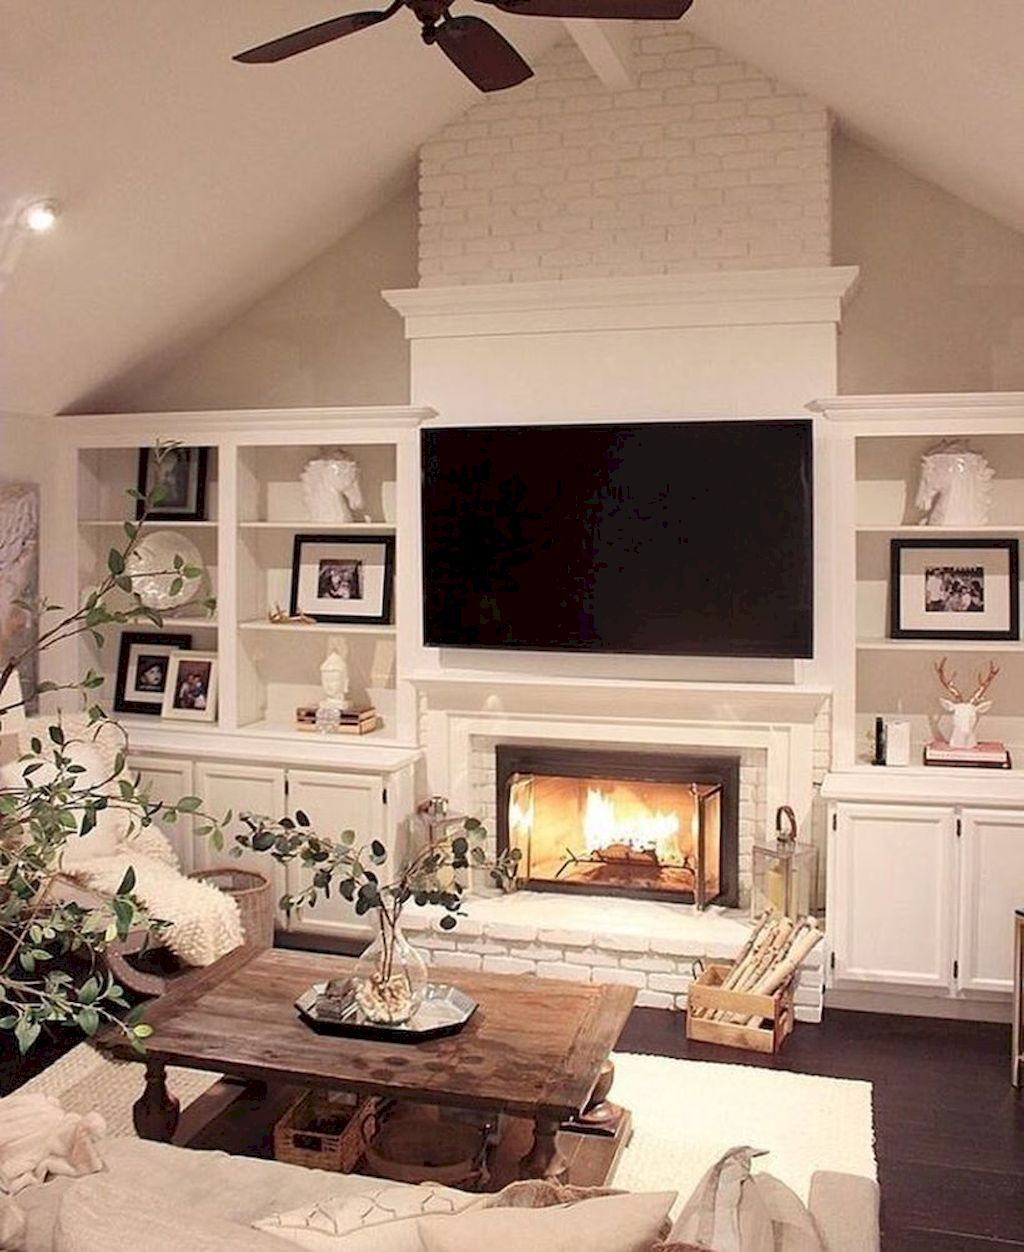 56 French Country Living Room Furniture & Decor Ideas | Home Ideas ...